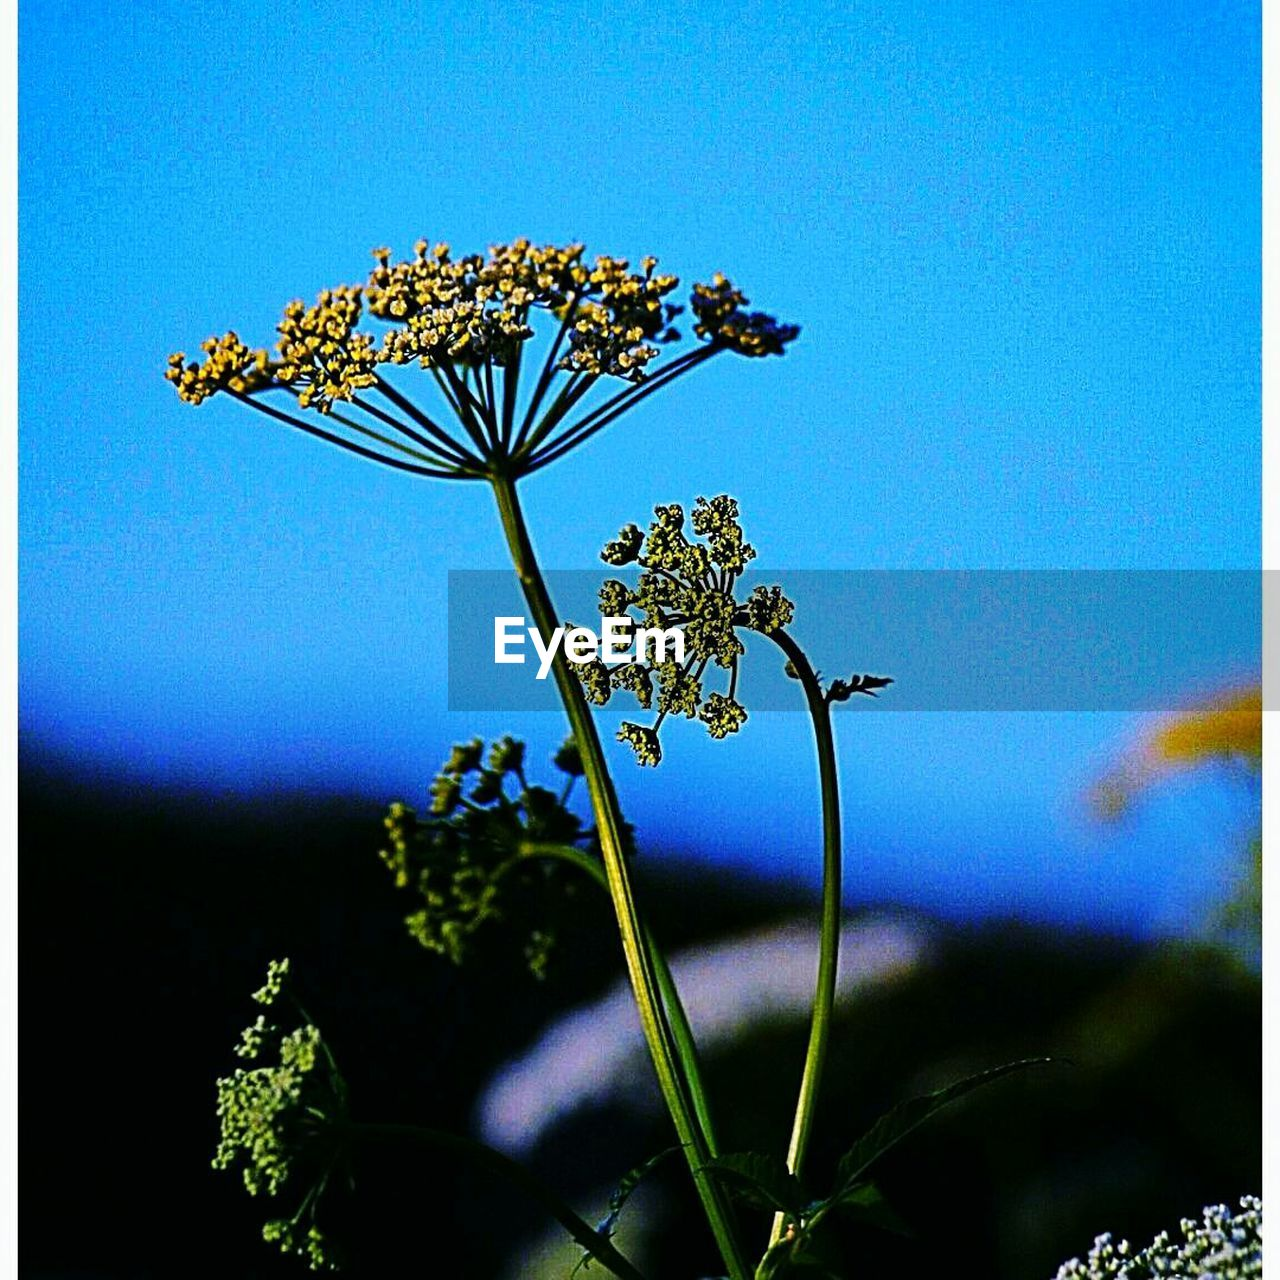 flower, growth, nature, fragility, beauty in nature, plant, no people, petal, blue, day, outdoors, blooming, close-up, freshness, flower head, clear sky, sky, tree